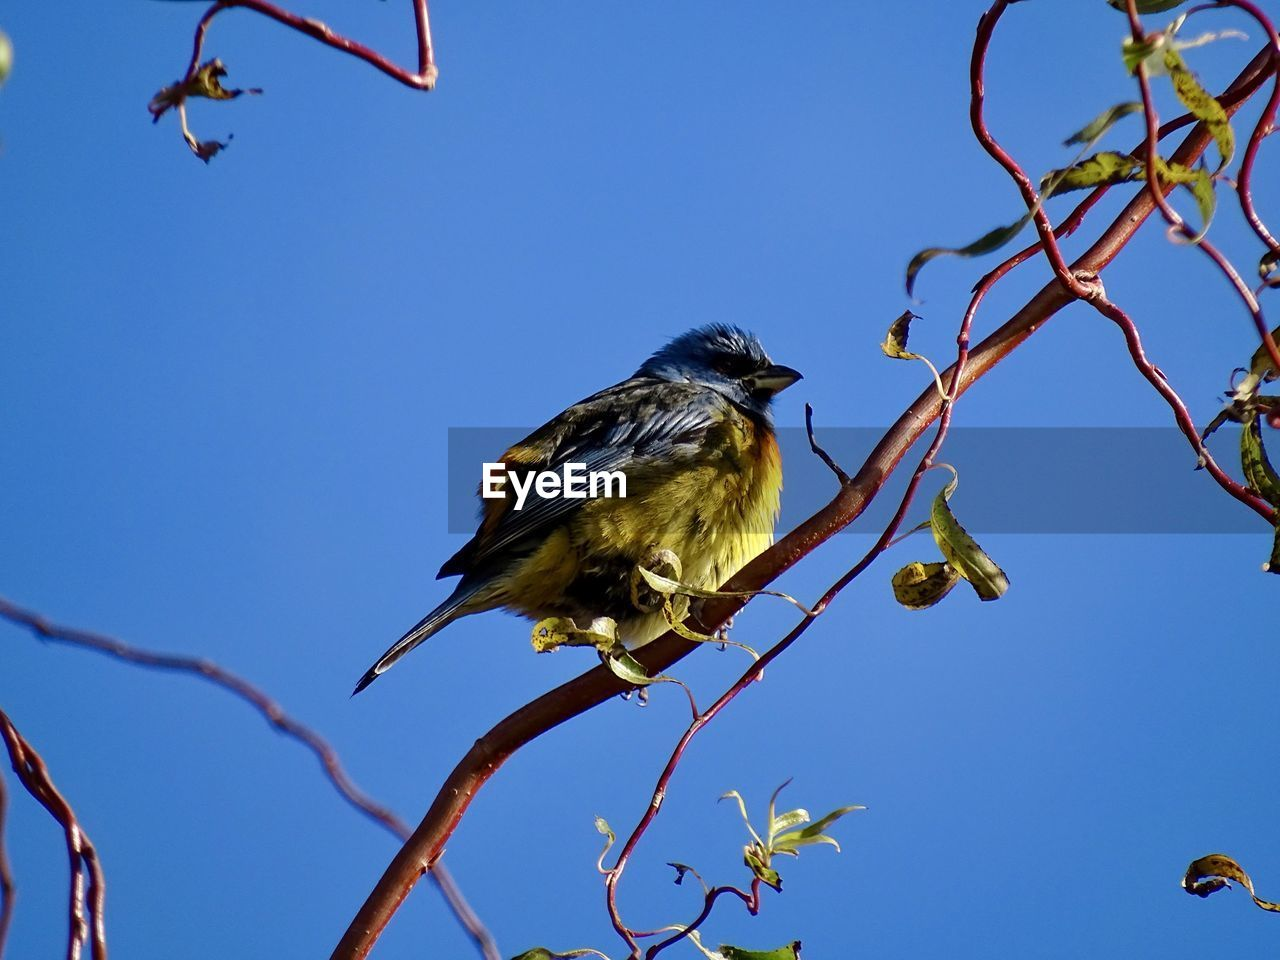 bird, animal wildlife, animals in the wild, vertebrate, animal themes, animal, low angle view, sky, tree, plant, one animal, perching, branch, clear sky, no people, nature, day, blue, outdoors, beauty in nature